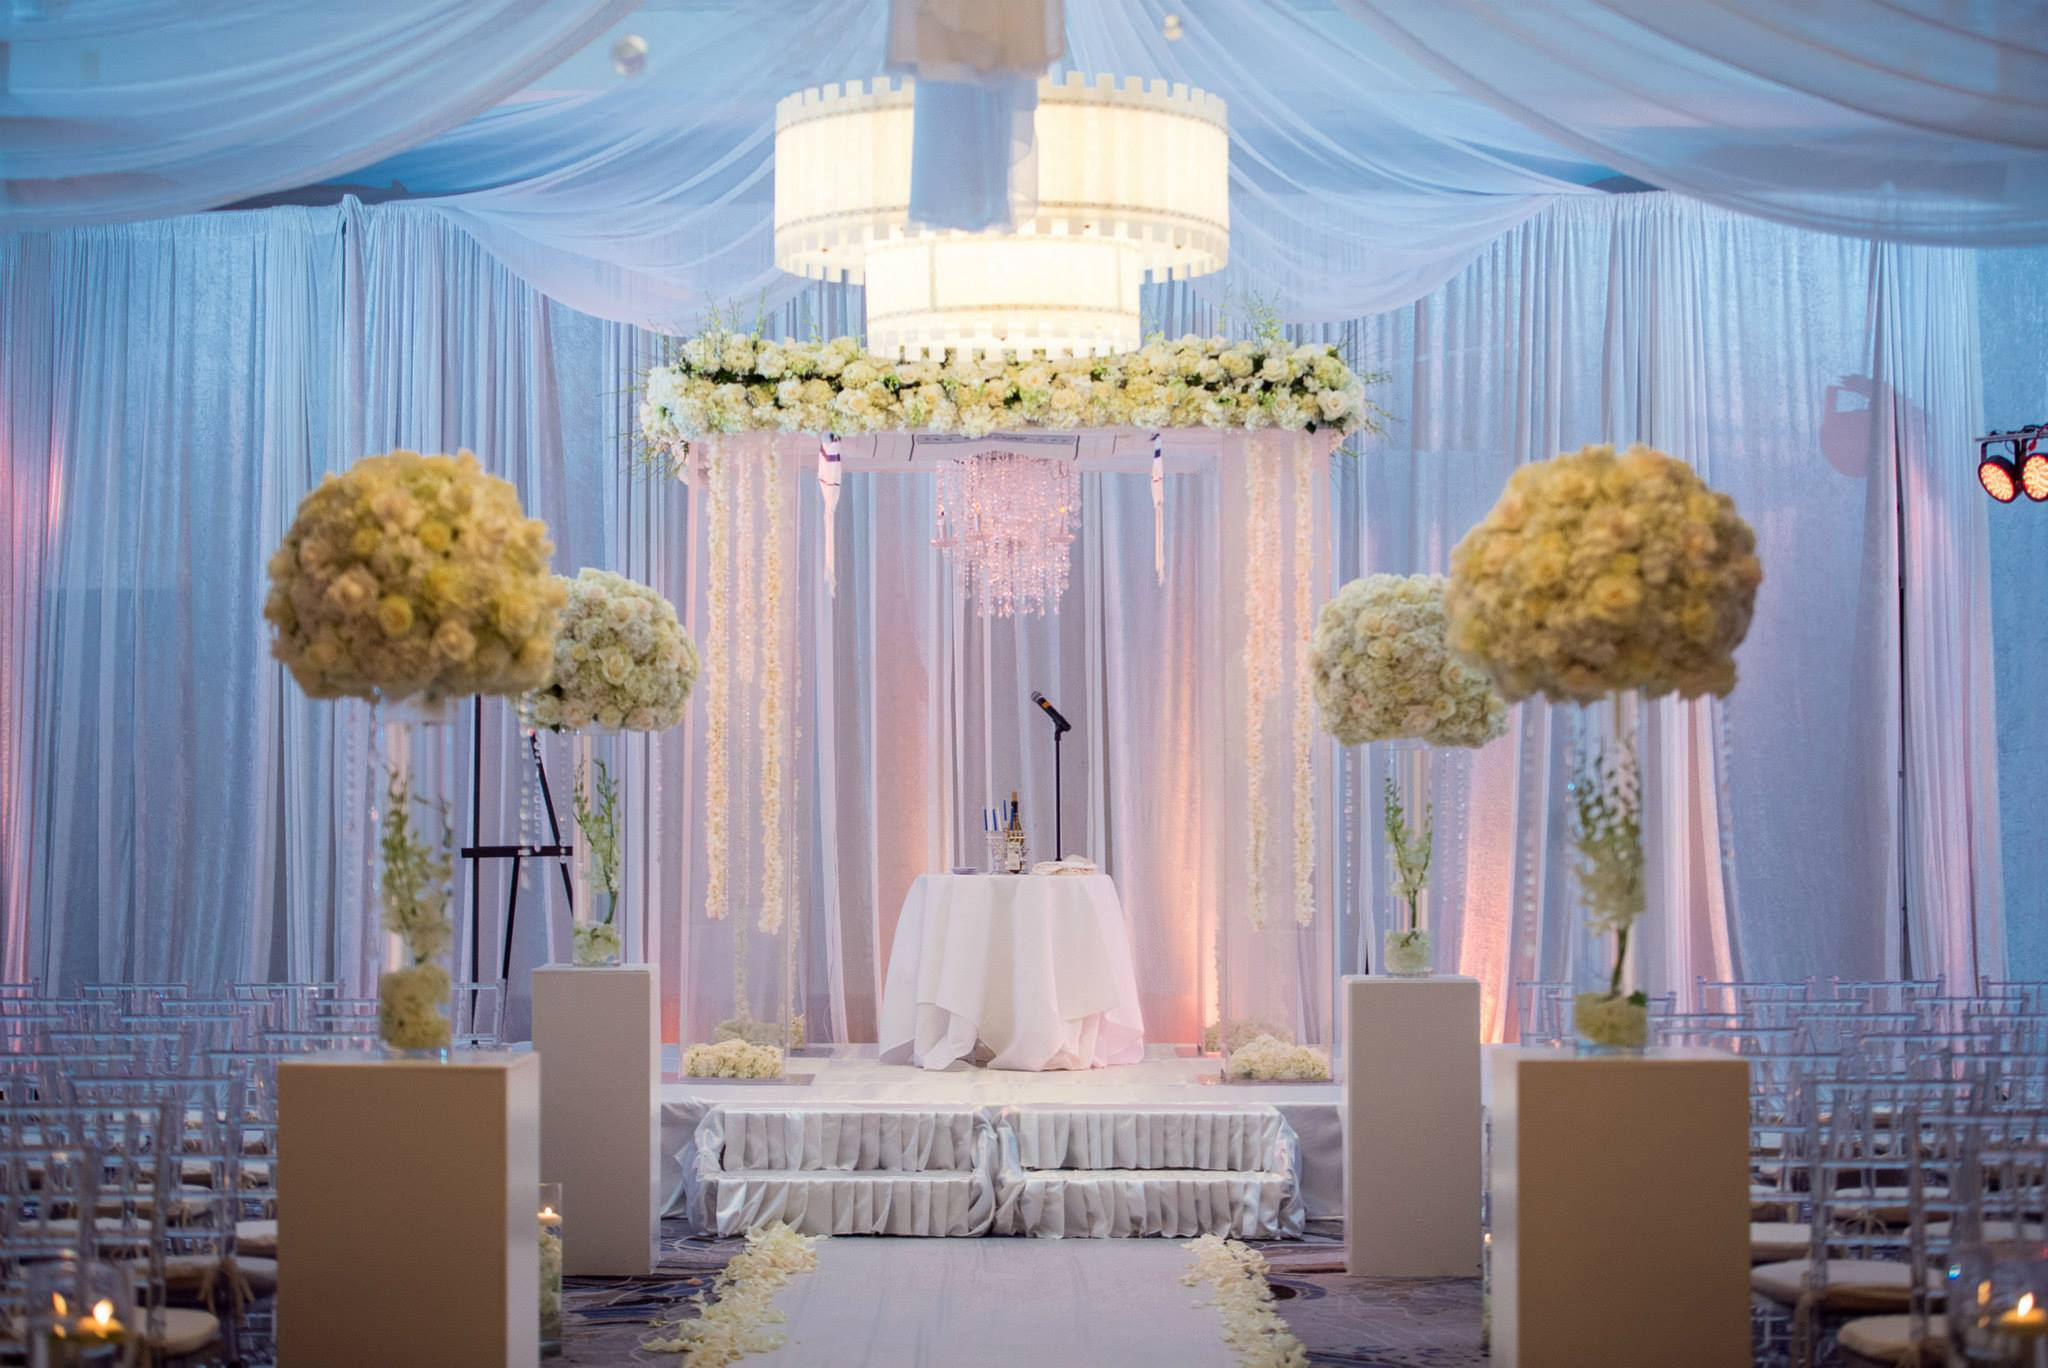 the-polo-club-wedding-boca-raton-palm-beach-velvet-white-draping-chuppah-with-chandelier